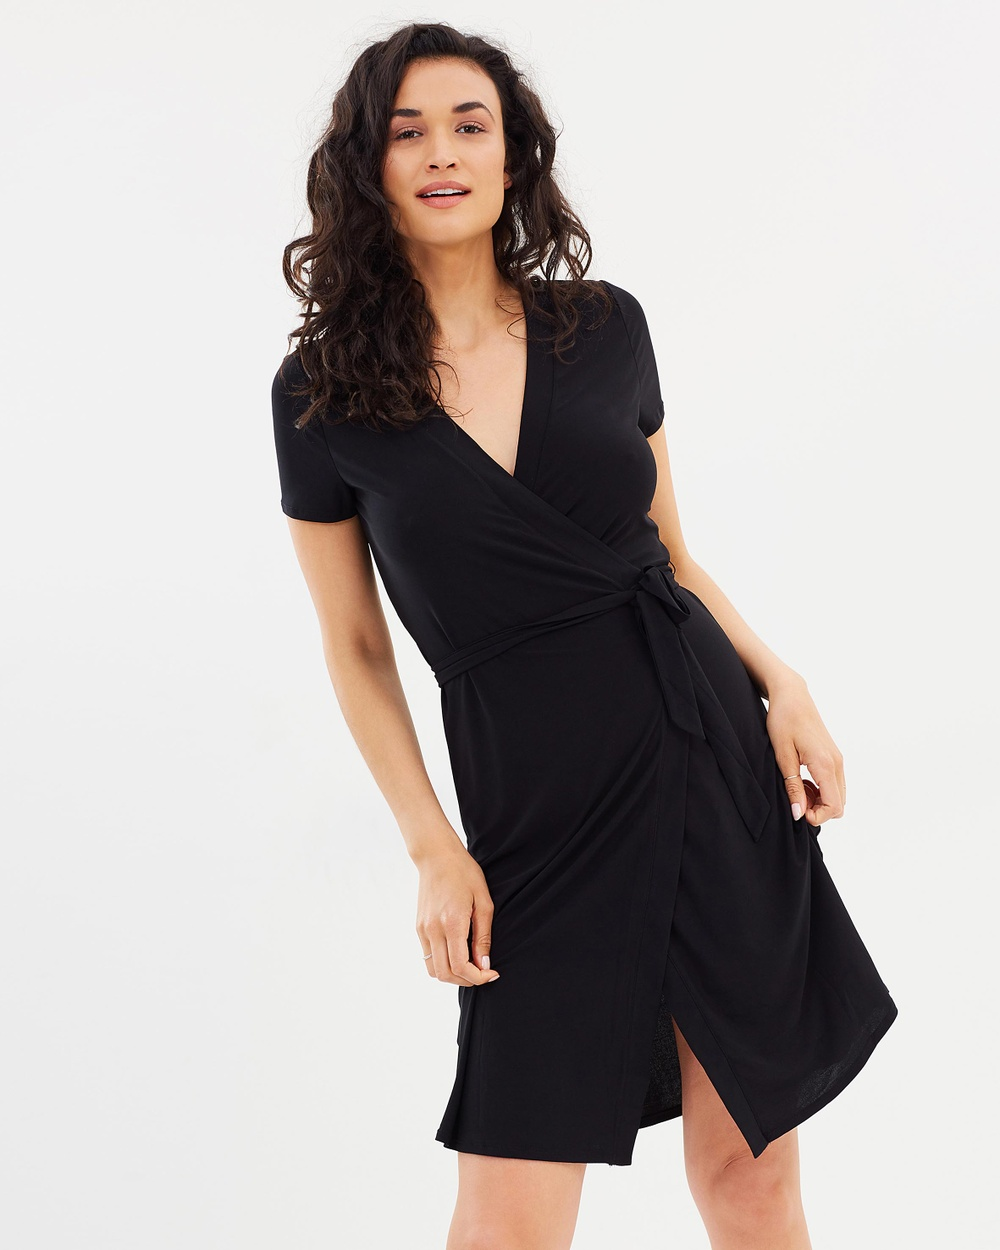 Photo of M.N.G M.N.G Bow Wrap Dress Dresses Black Bow Wrap Dress - Barcelona-born M.N.G dresses the modern woman with quality, chic designs that combine the best of this season's trends with timeless appeal. From trench coats to tailored blazers, relaxed knits, leather handbags, covetable shoes and glamorous maxi gowns, M.N.G delivers a range of designs to suit every style profile and dress code. Our model is wearing a size small dress. She is 178cm (5'10)